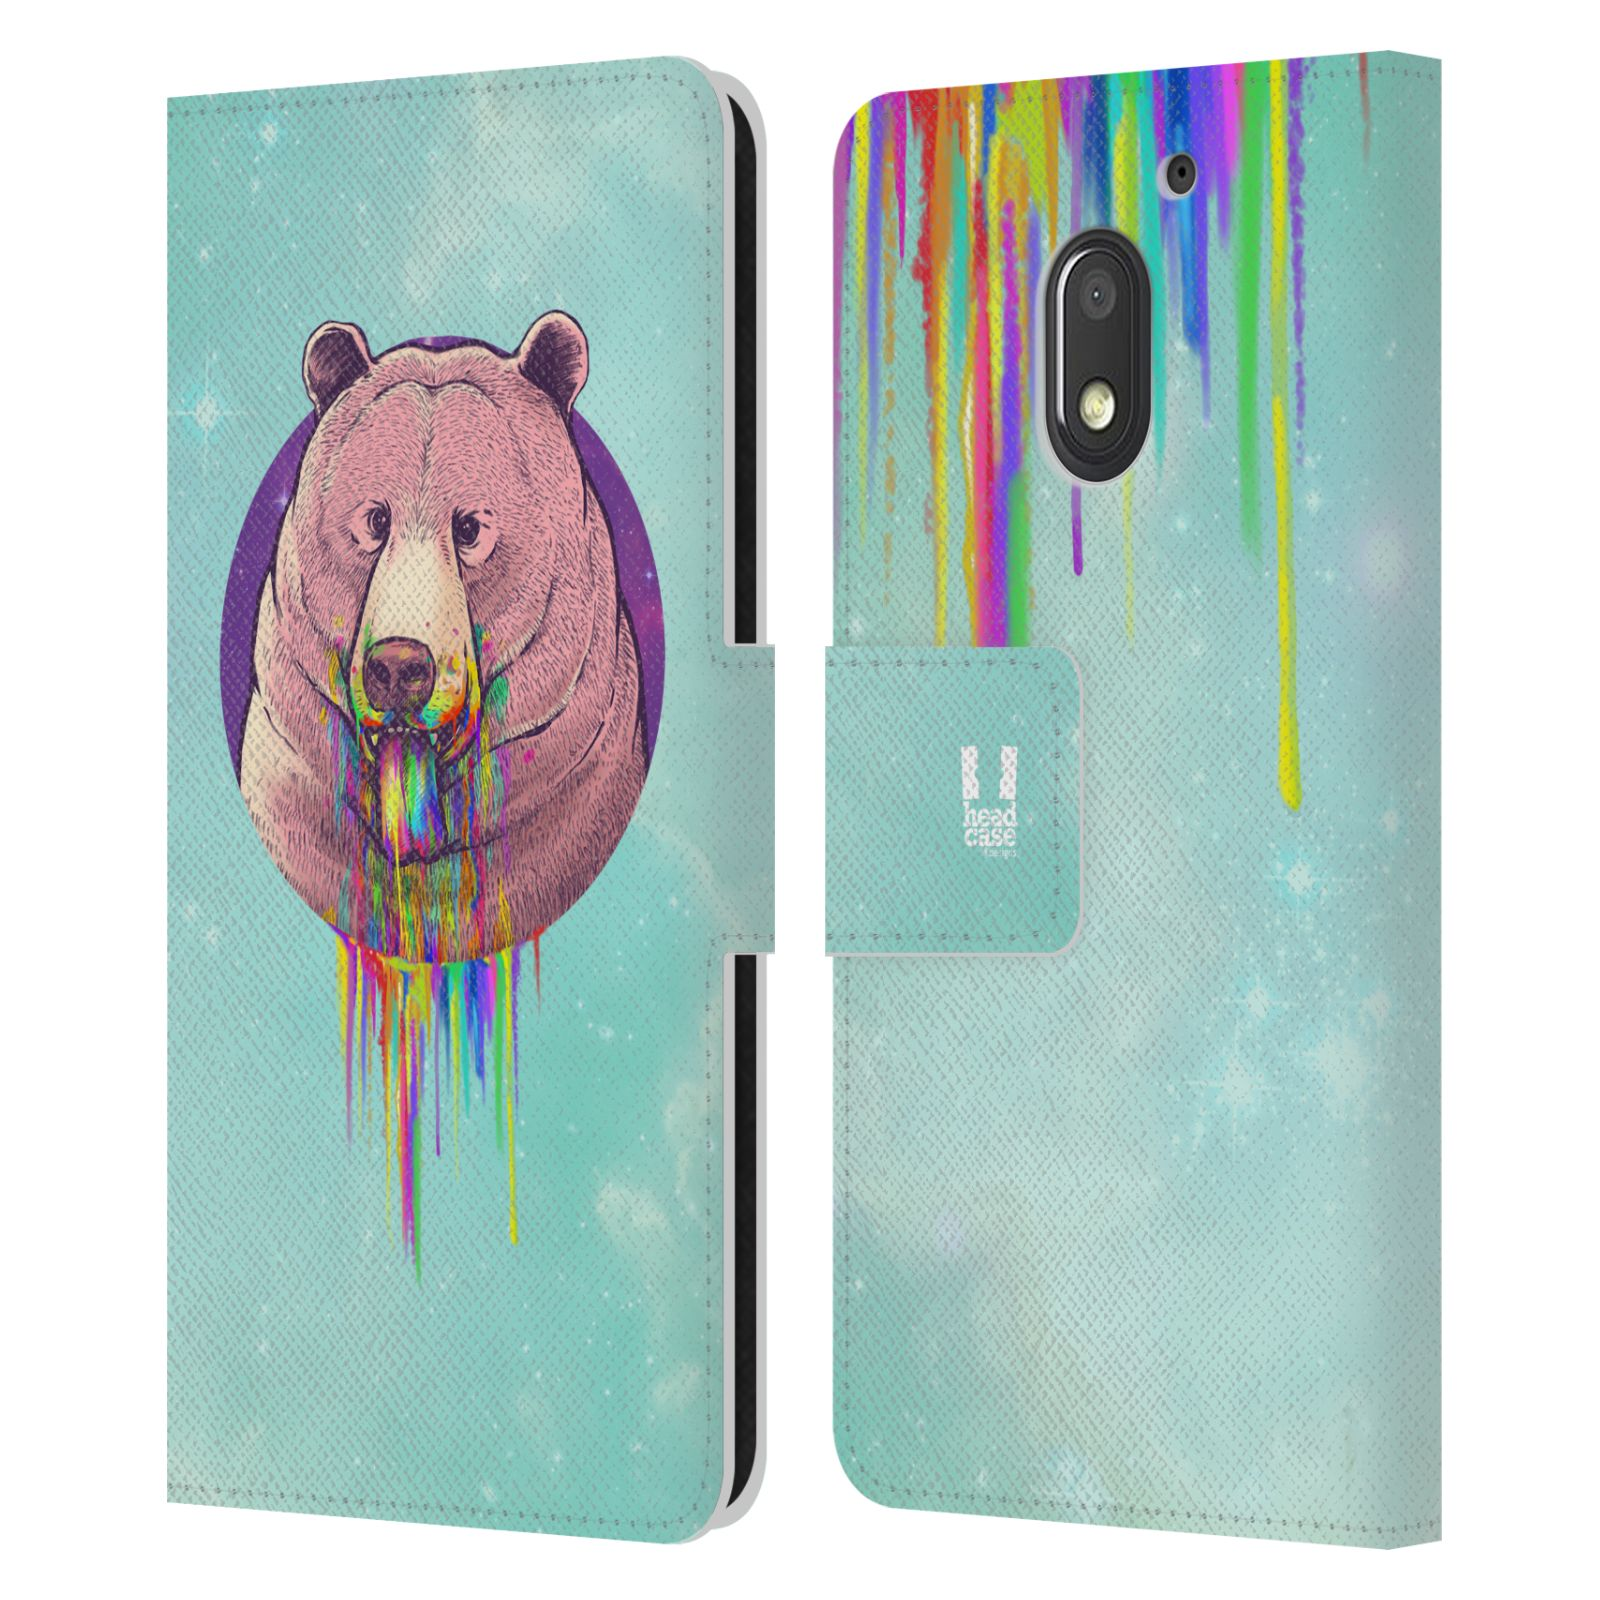 HEAD-CASE-DESIGNS-RAINBOW-PUKE-LEATHER-BOOK-CASE-FOR-MOTOROLA-MOTO-E3-POWER